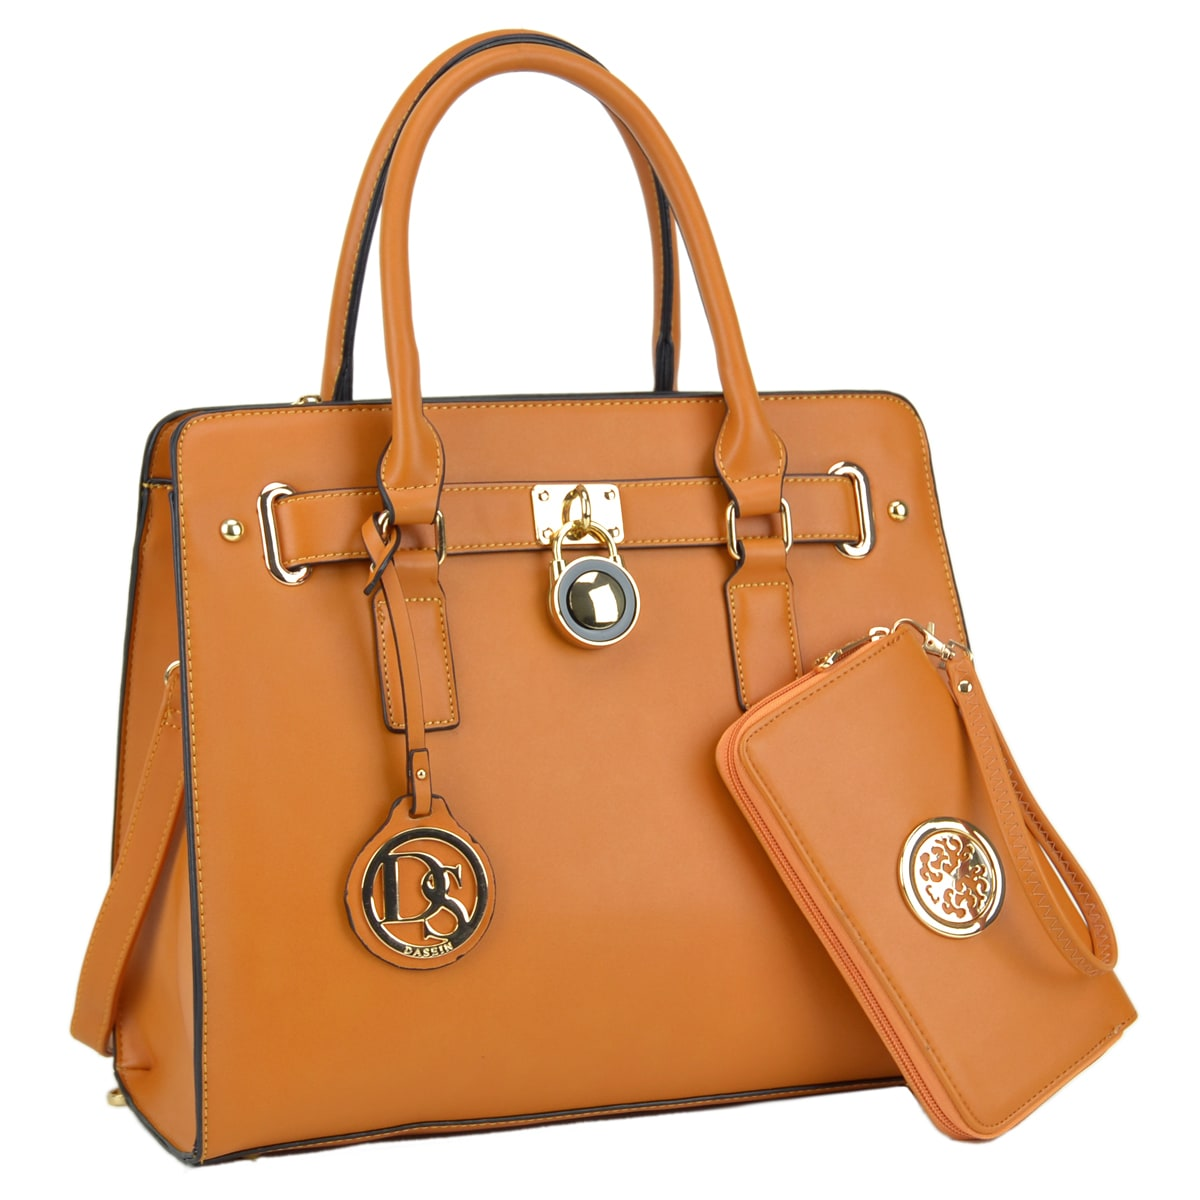 Tan Handbags Our Best Clothing Shoes Deals Online At